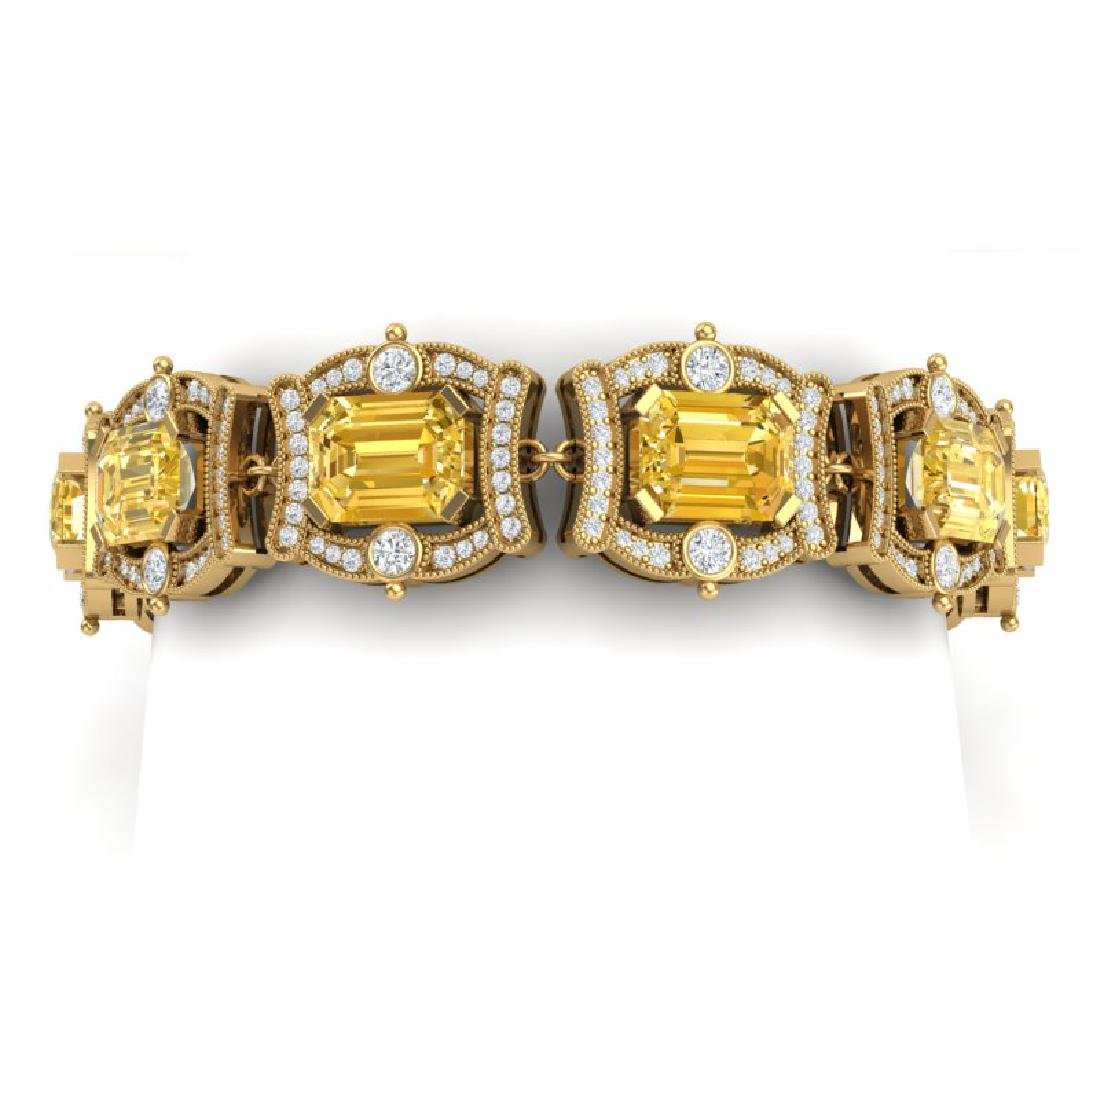 37.15 CTW Royalty Canary Citrine & VS Diamond Bracelet